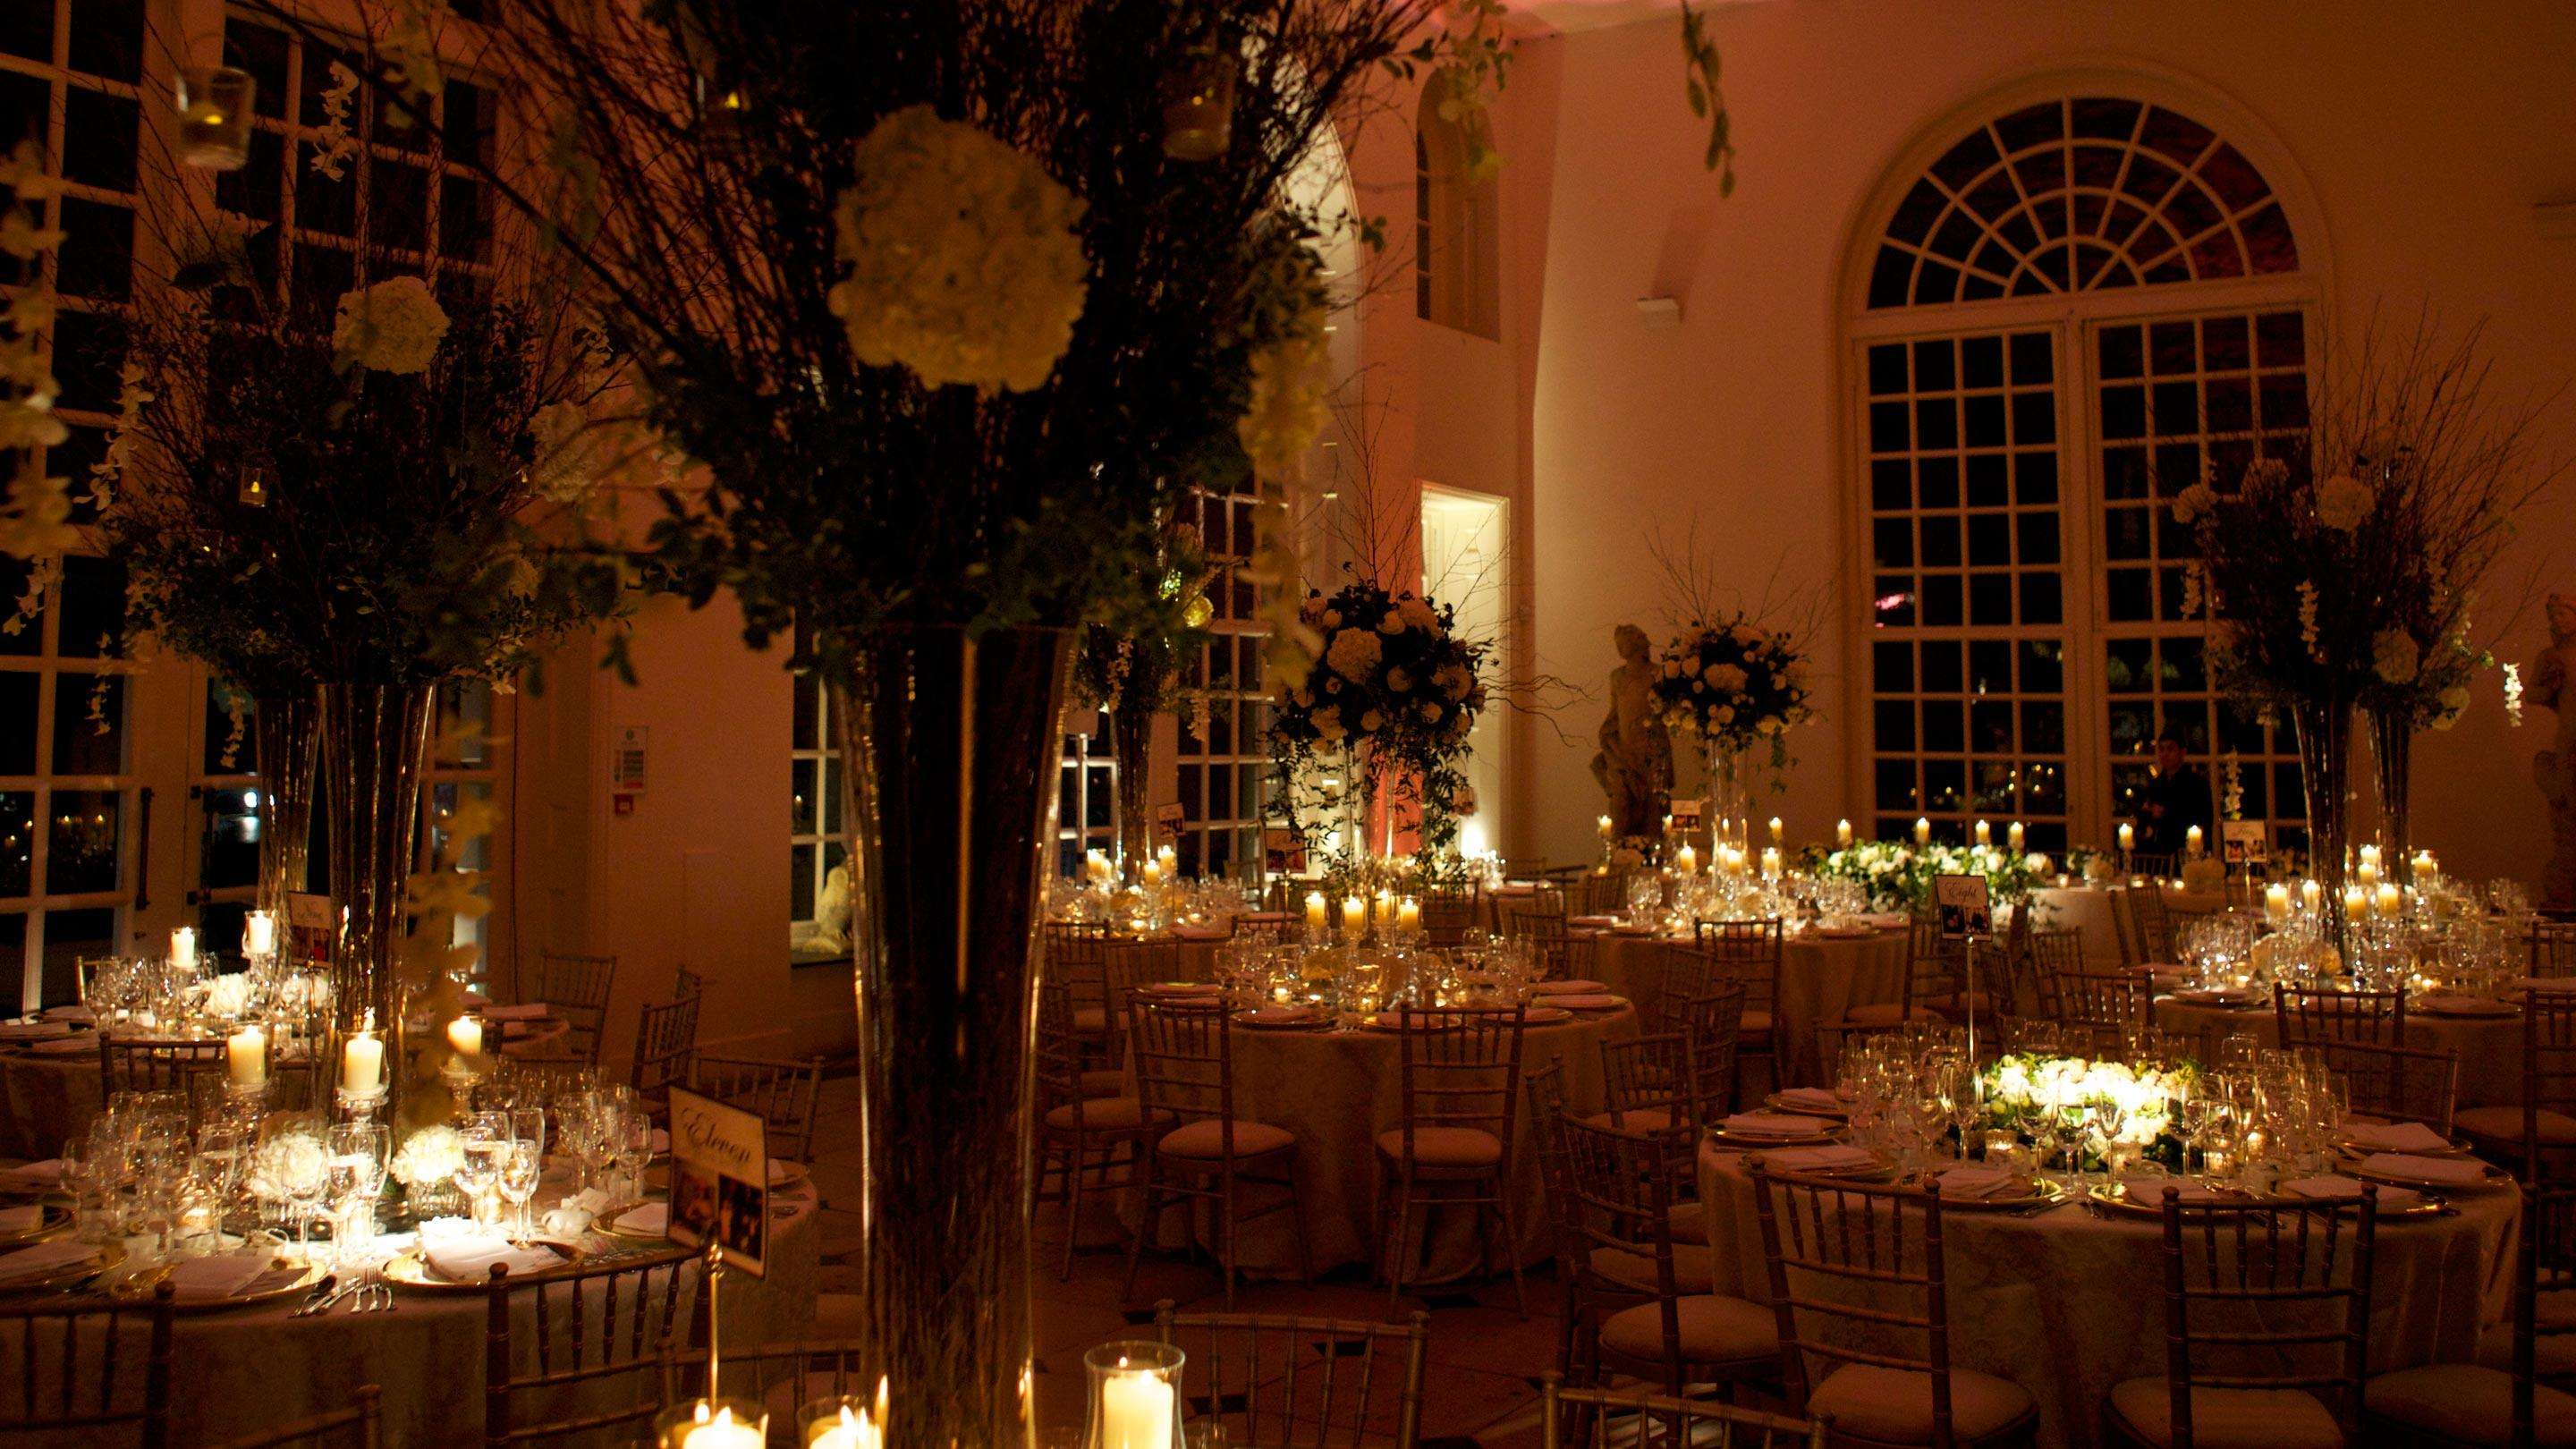 Faqs For Weddings Events At Kew Gardens